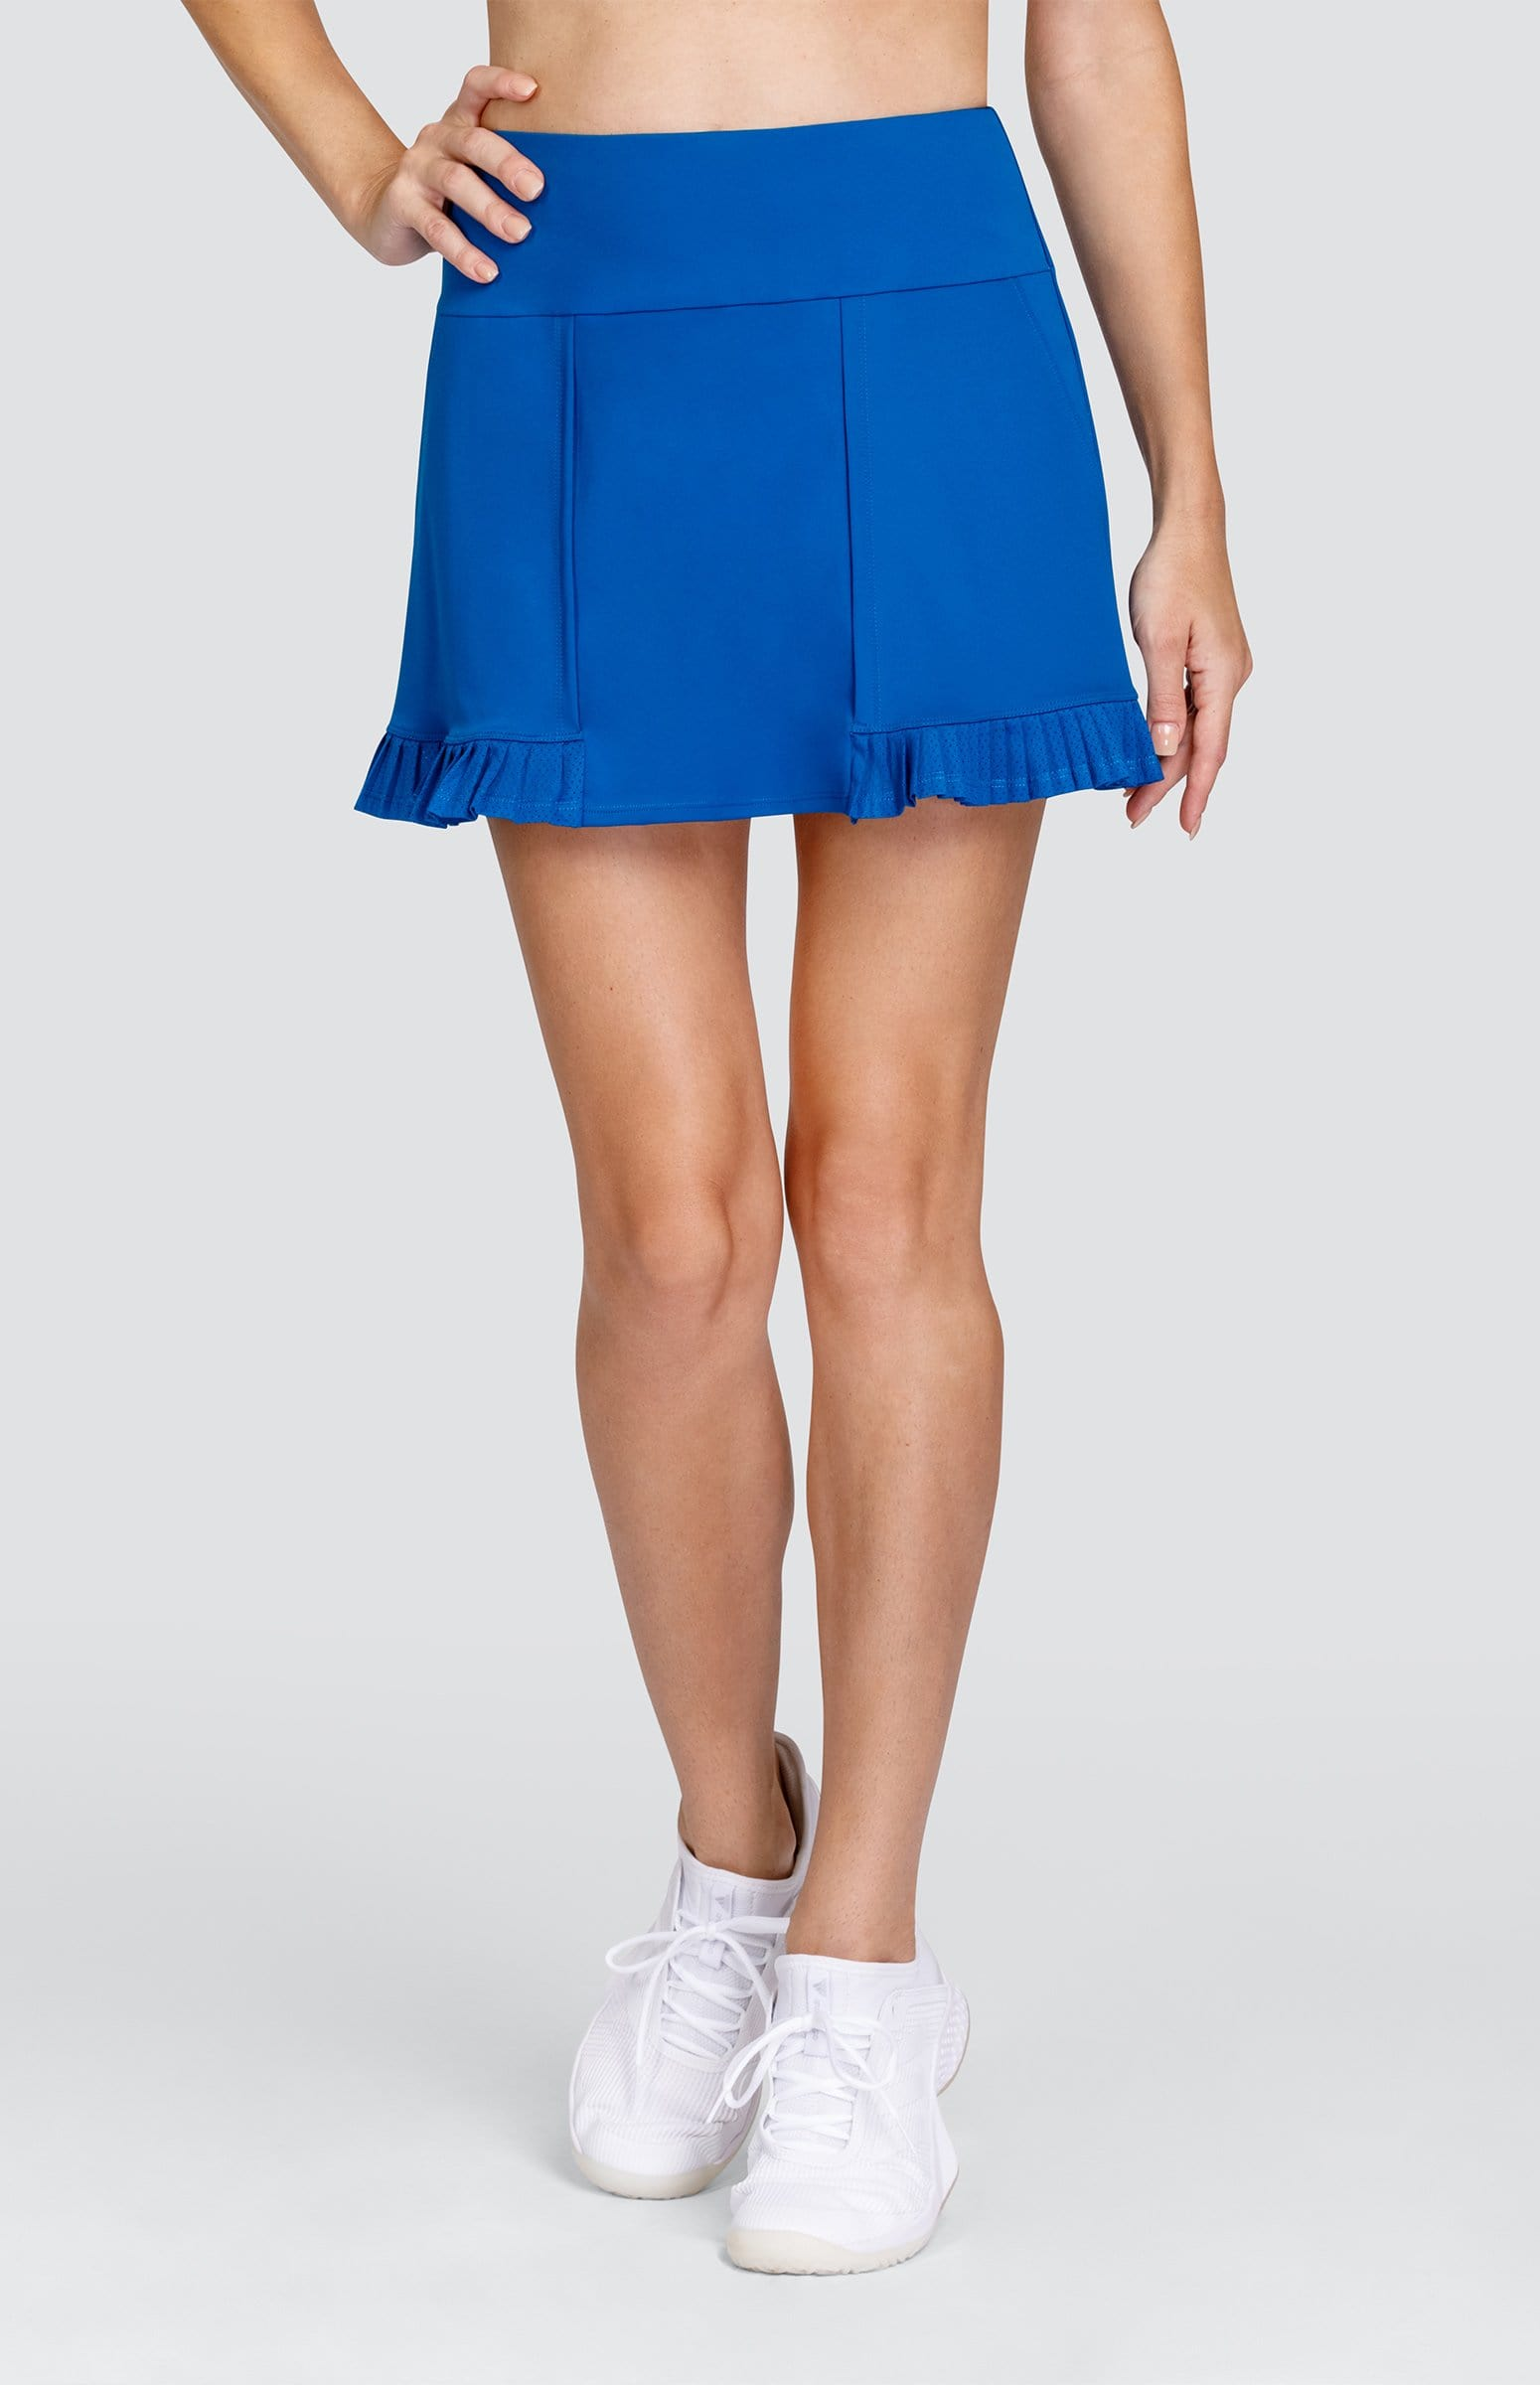 Milani Skort - Royal Blue - 14.5